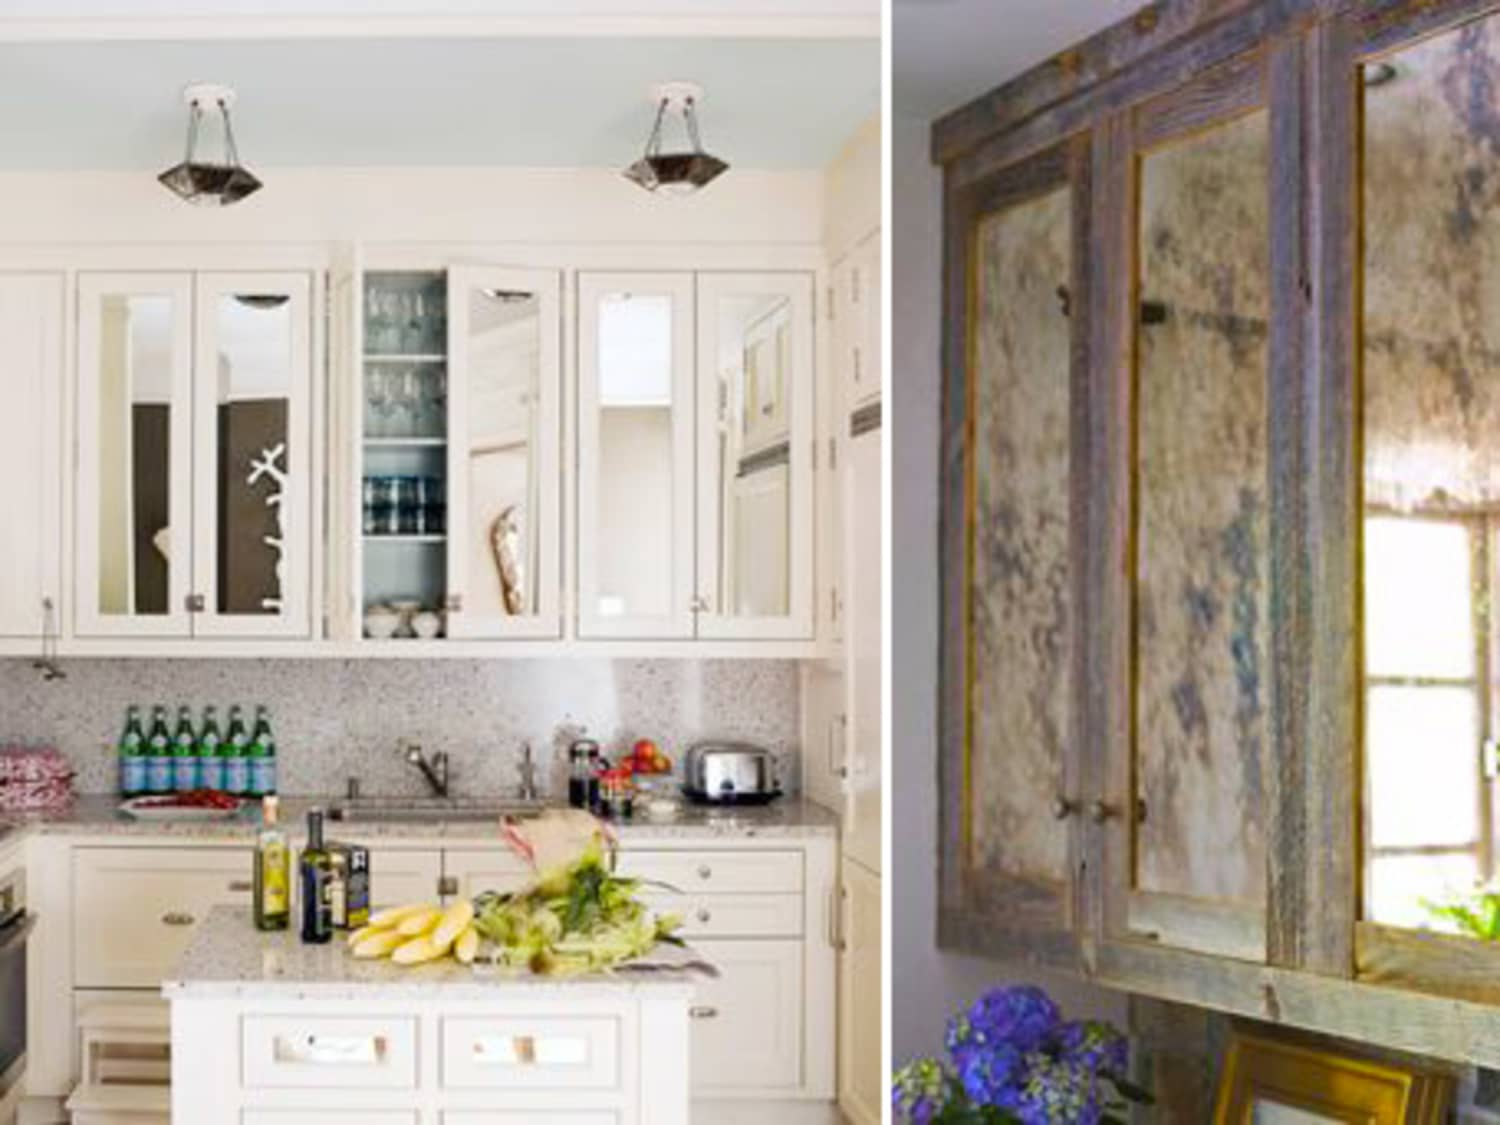 Mirrored Kitchen Cabinets Mirrored Cabinets: Check Your Hair While You Cook! | Kitchn